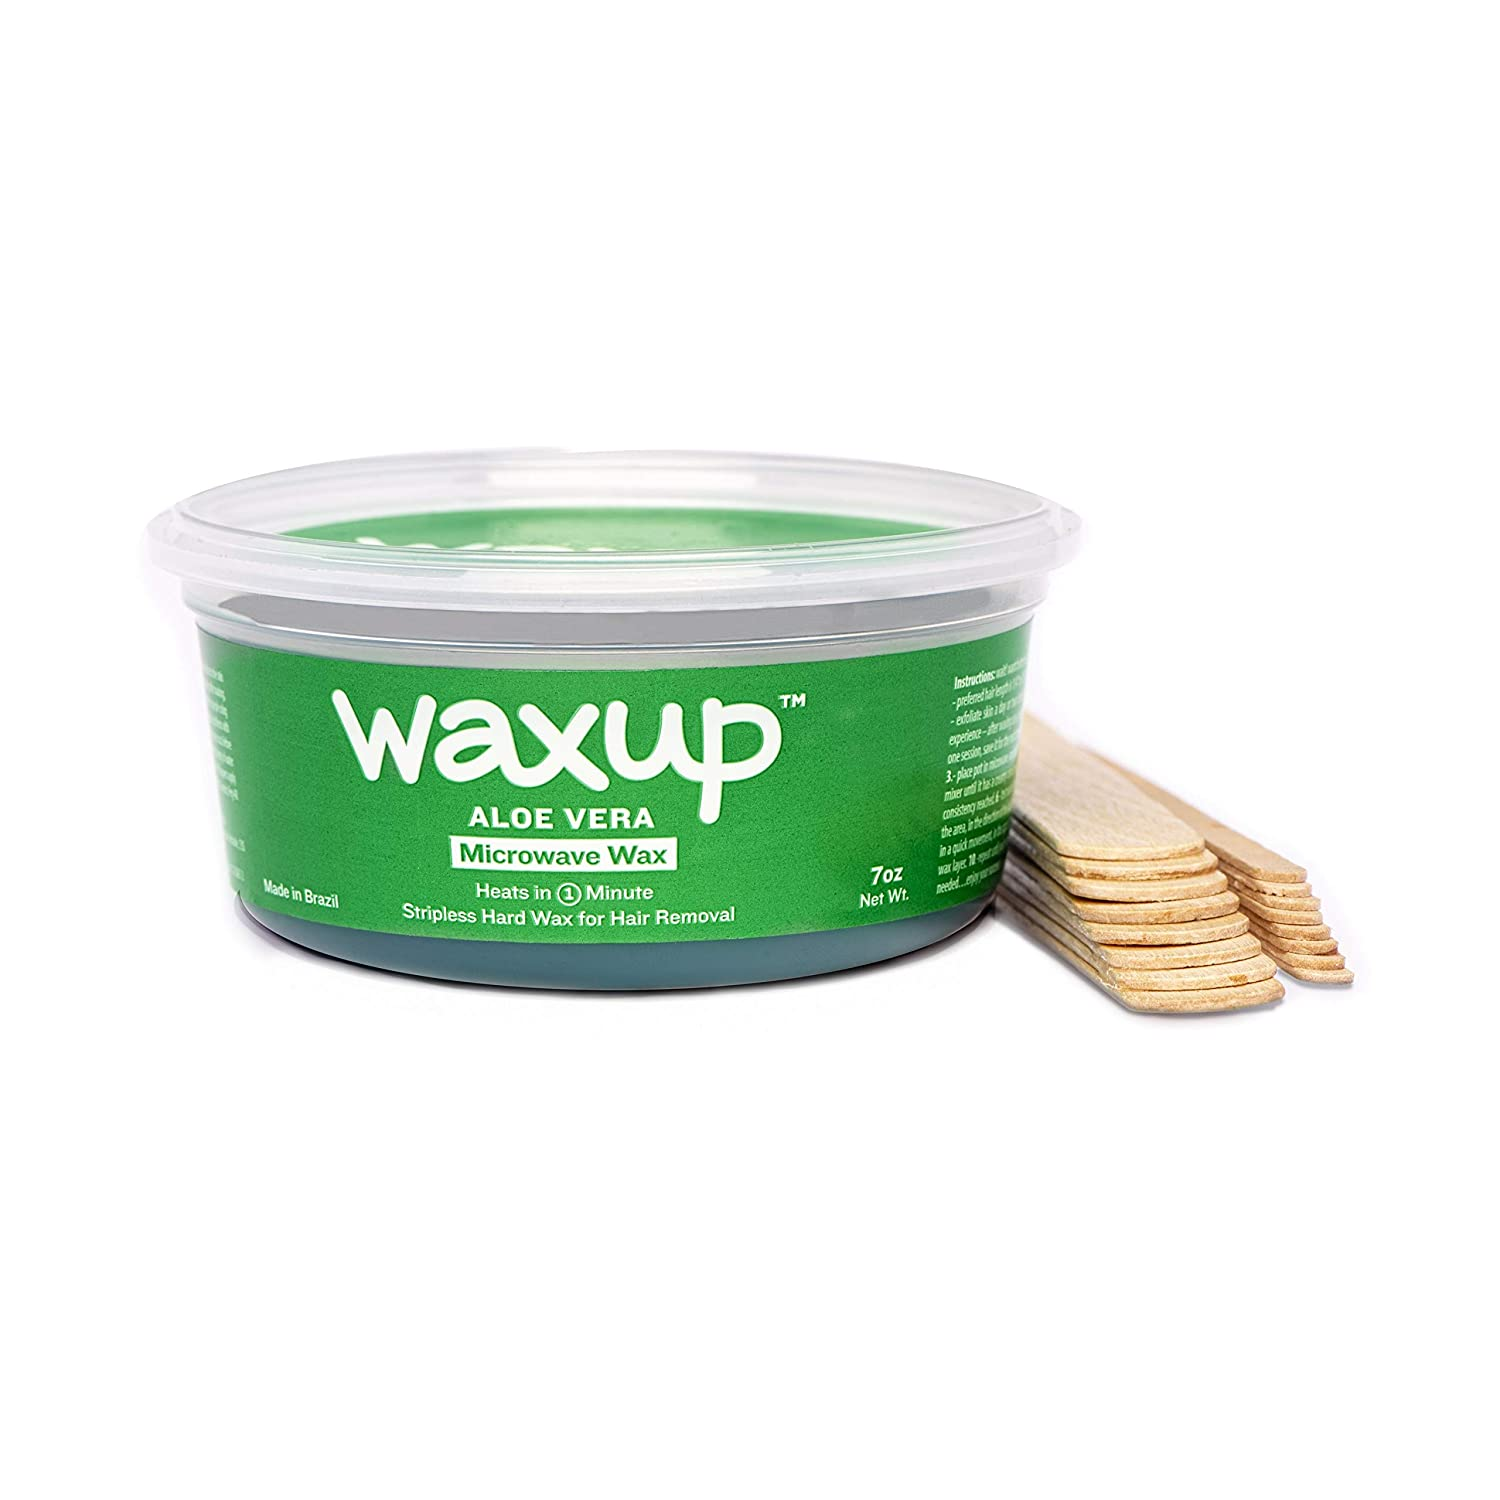 Waxup Microwave Hard Wax Kit, Aloe Vera, 7 Ounces Pot with 8 Large Wax Sticks, Home Waxing, Stripless Microwaveable Hot Hair Removal Wax for Body, Face, Eyebrows, Nose, Ear, Upper Lip, Legs and Arms.